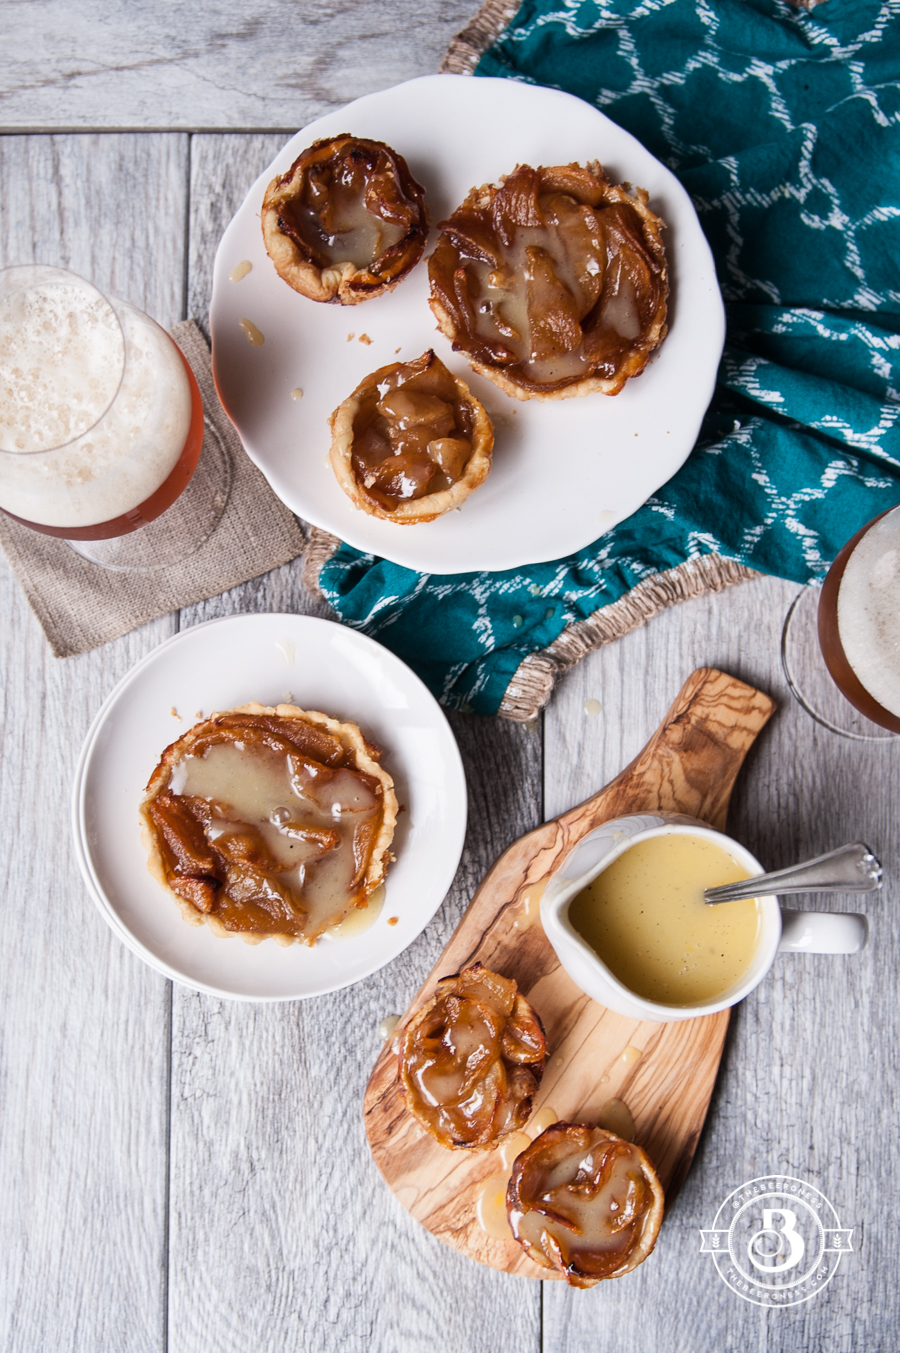 Beer Caramelized Apple Tart with Saison Crème Anglaise 3